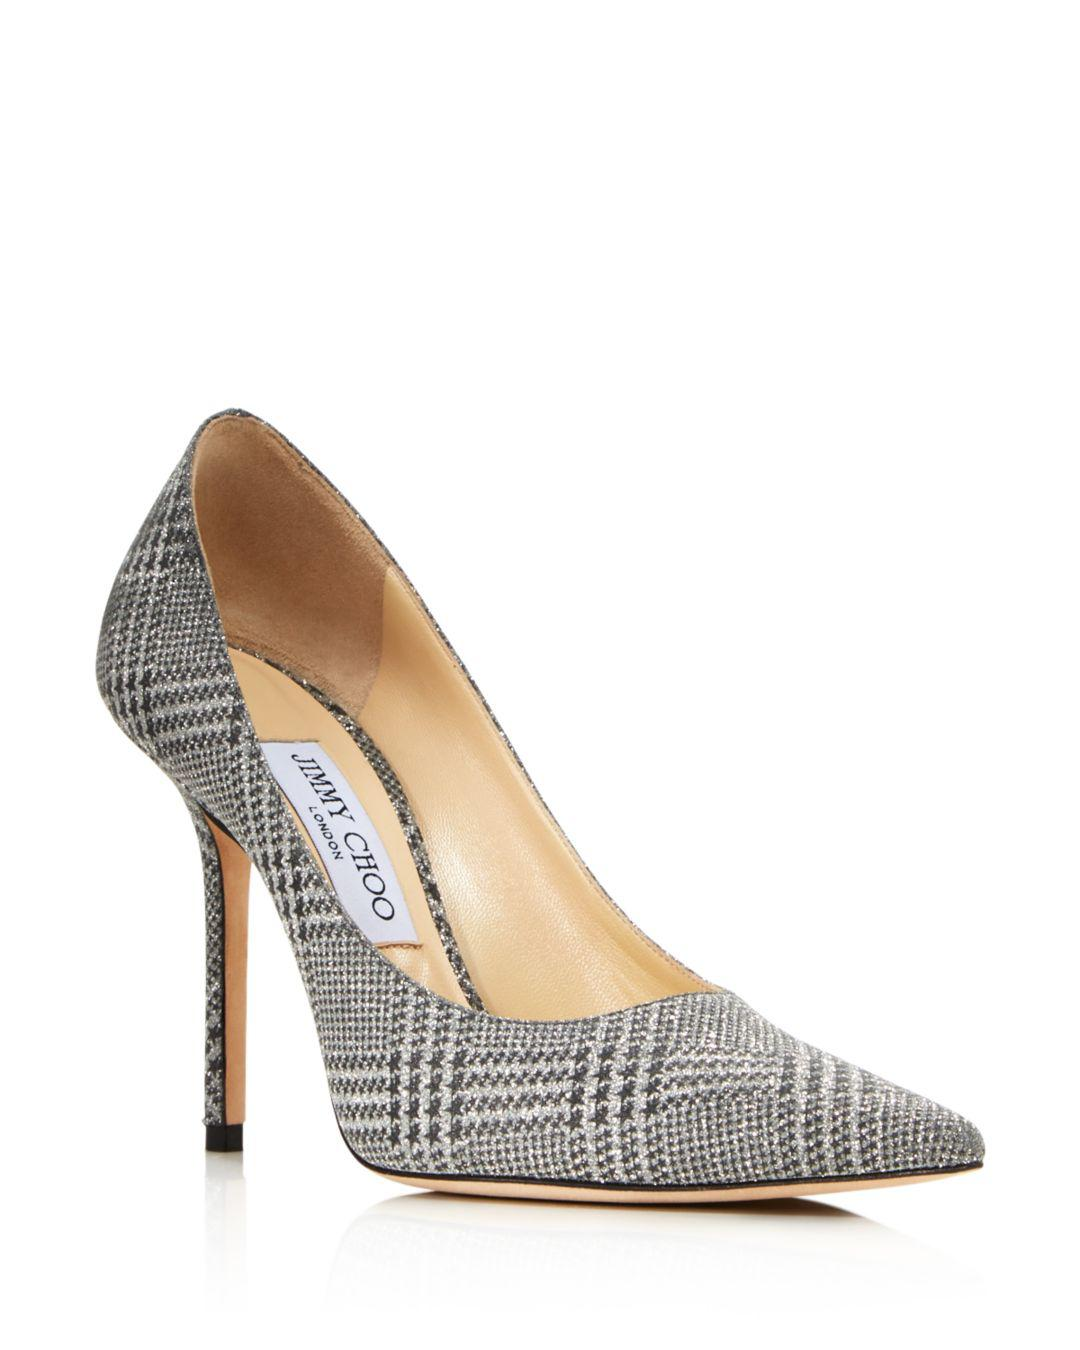 571e7401f33 Lyst - Jimmy Choo Women s Love 100 Pointed Toe Checkered Pumps in ...